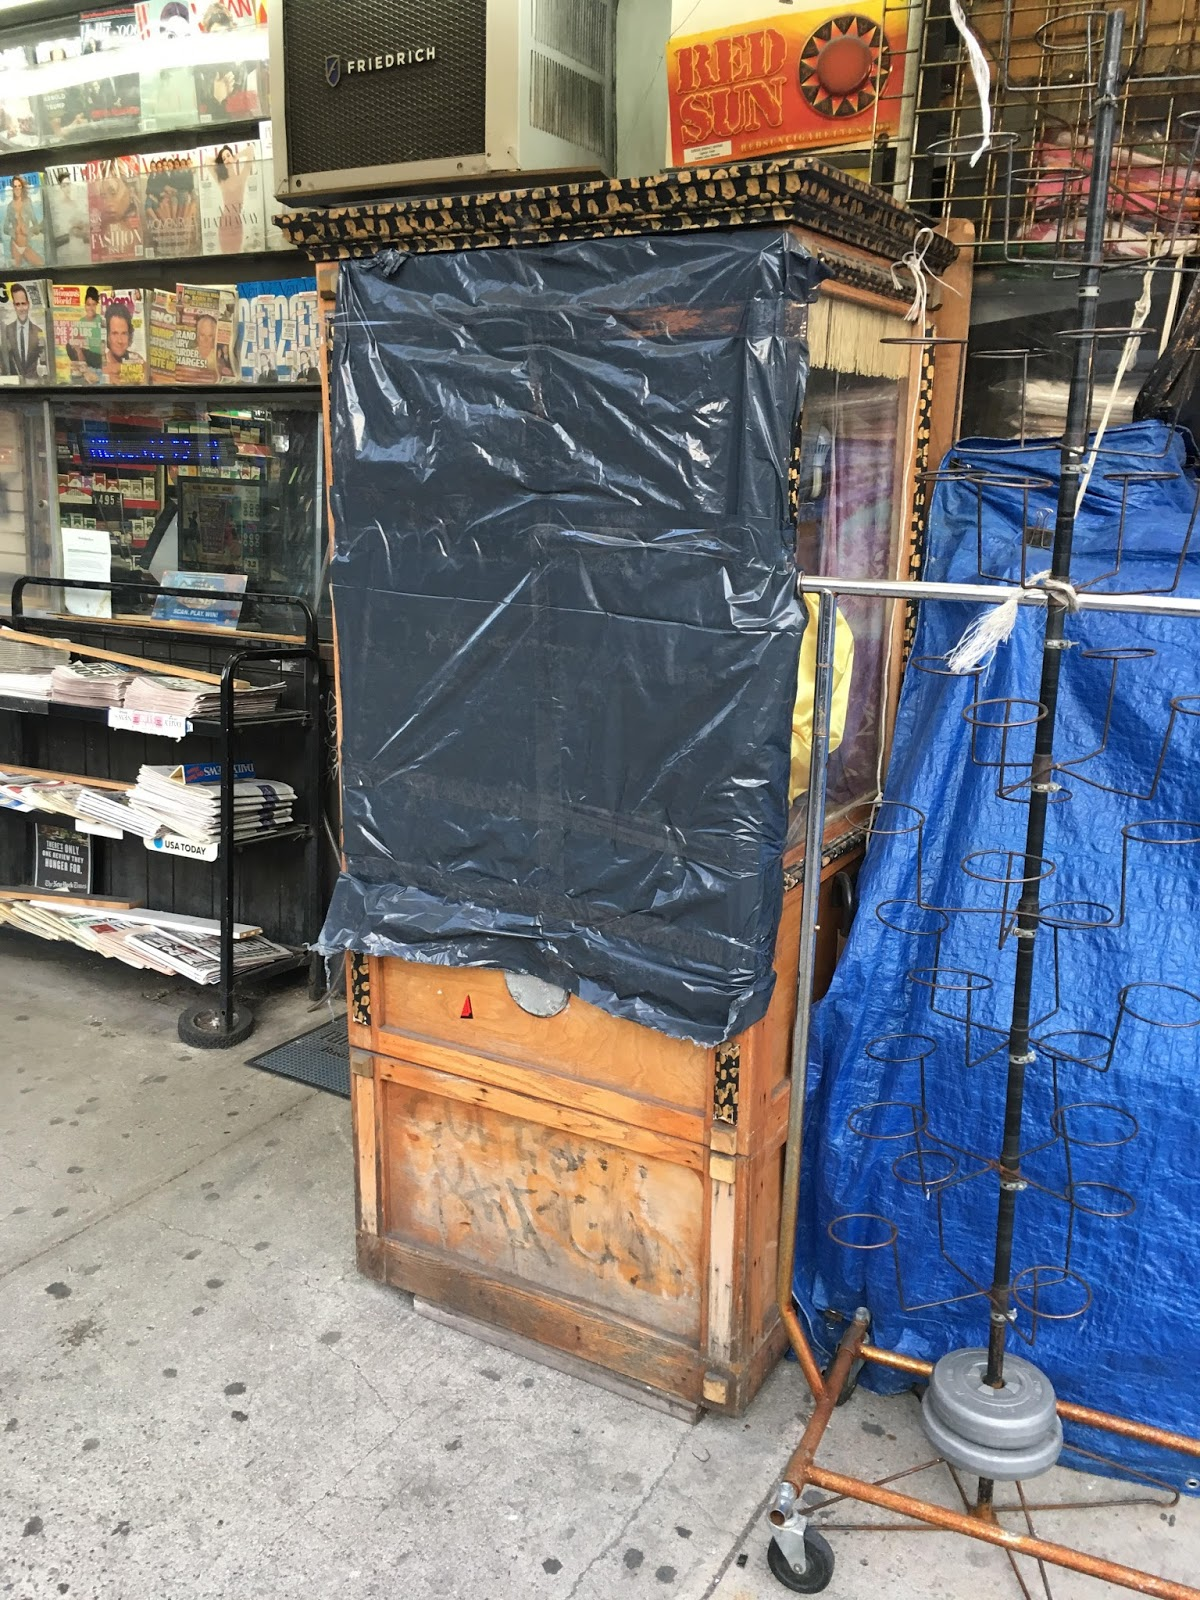 Ev grieve for the time being zoltar is unable to see the for 2nd avenue salon